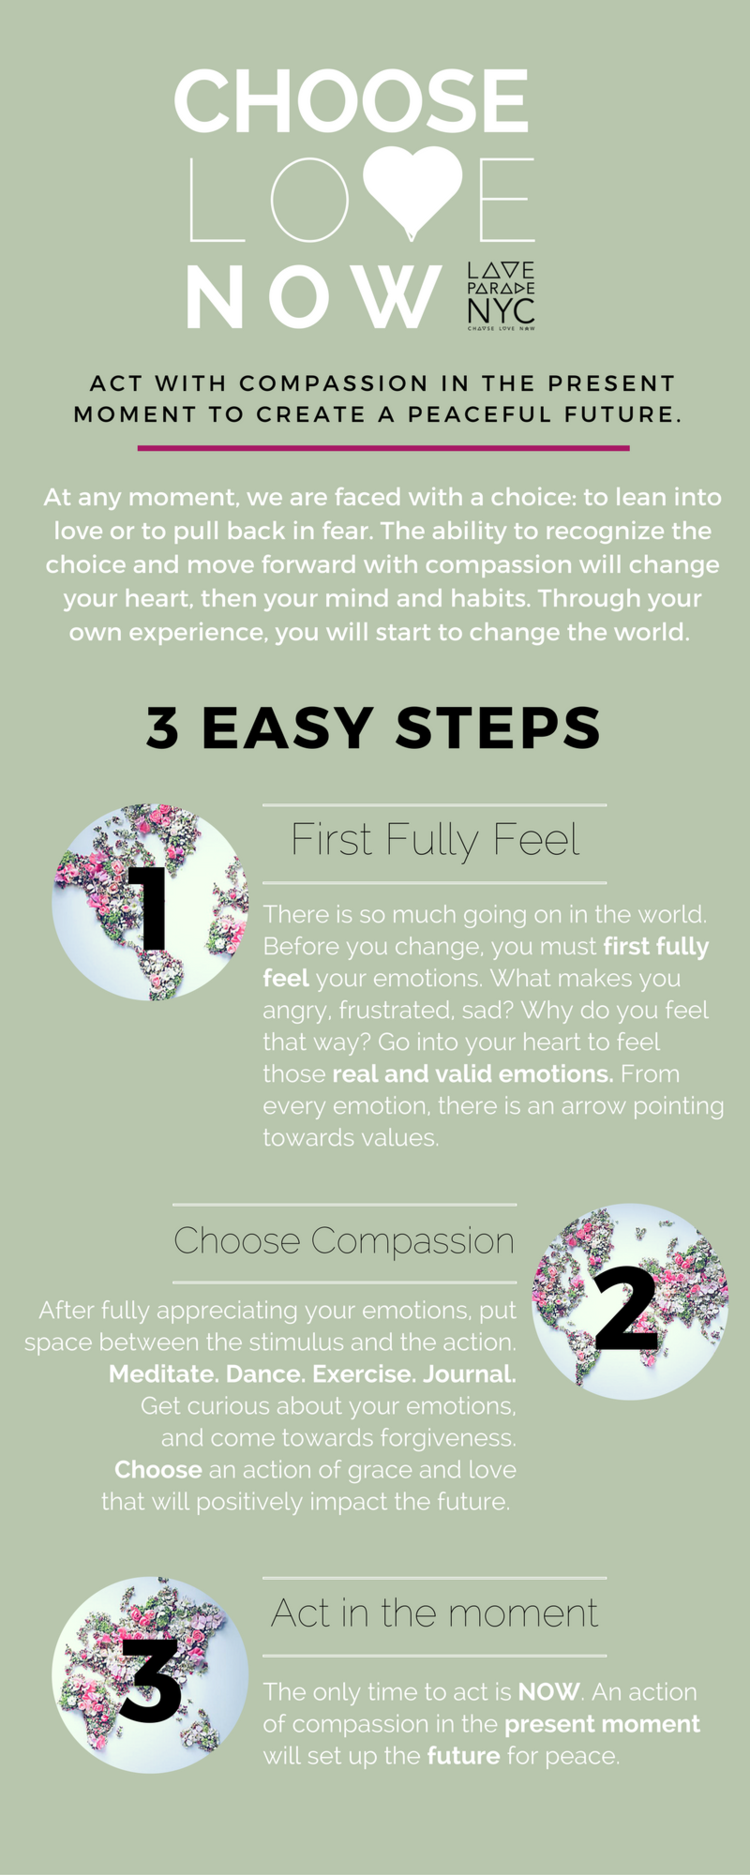 Choose Love Now mindfulness tecnique infographic